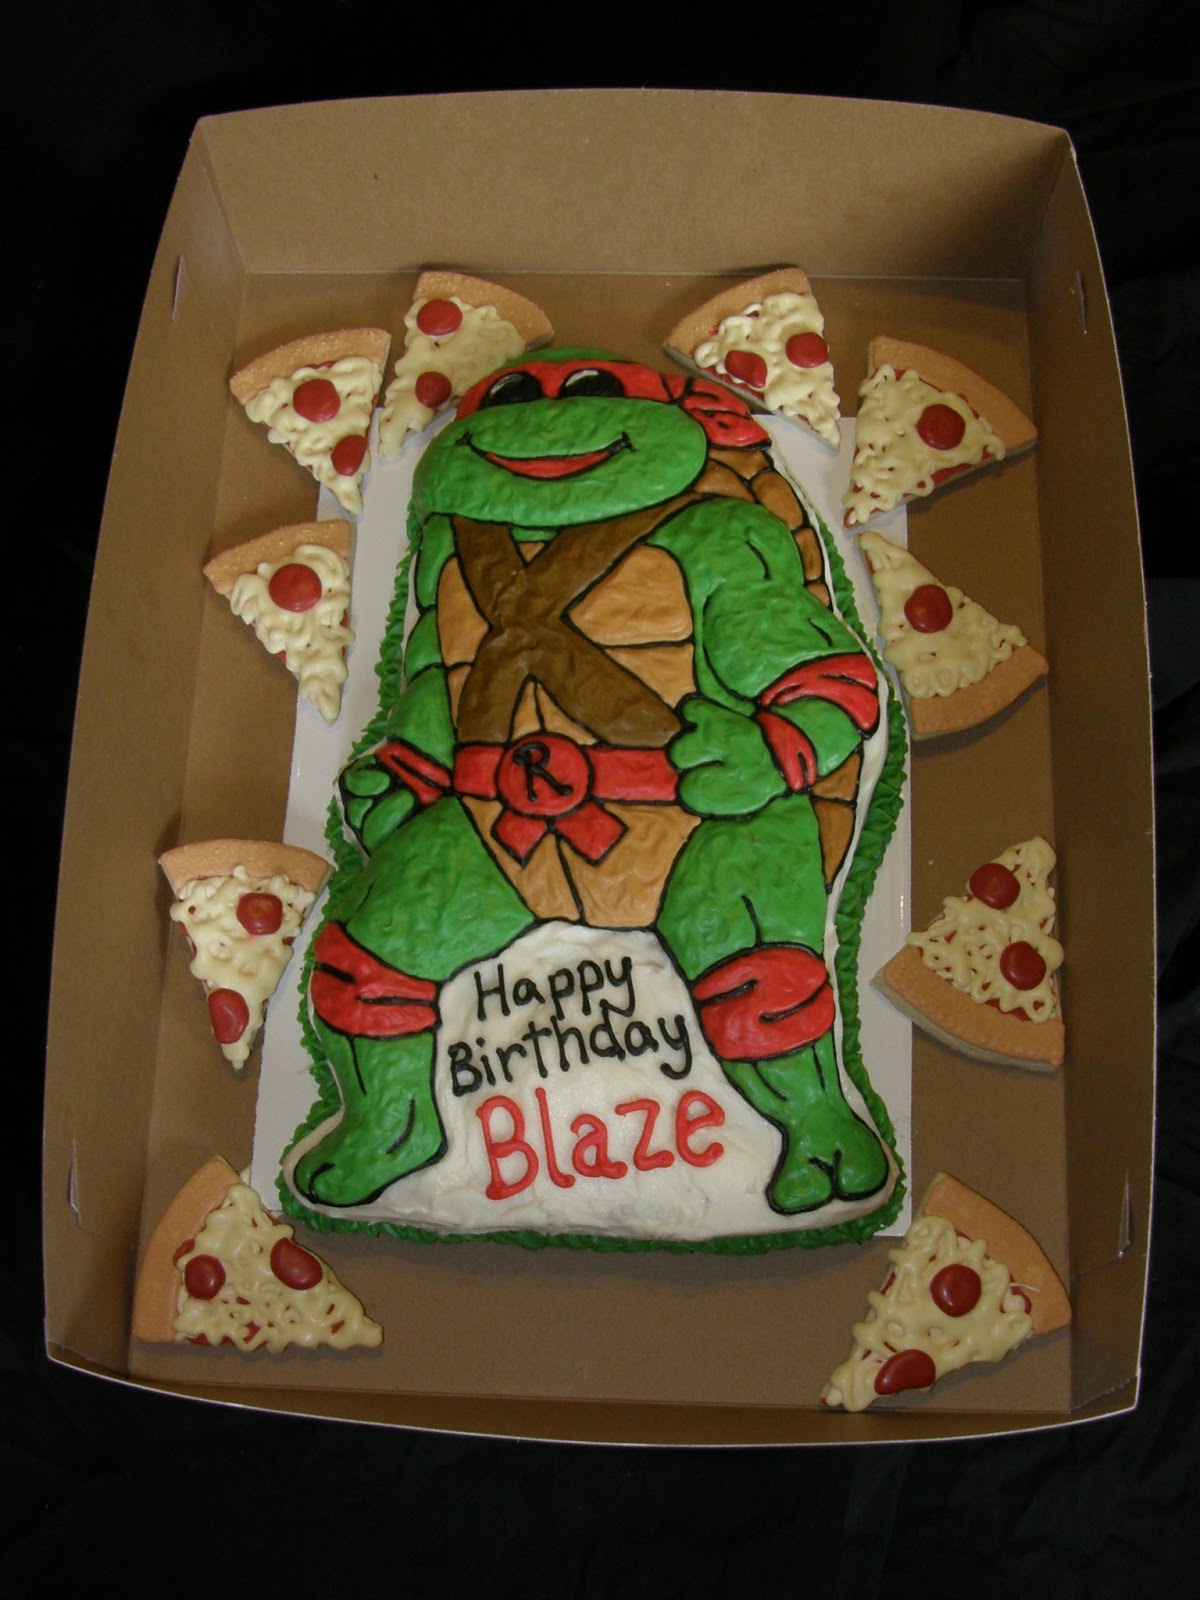 Ninja Turtle Raphael Birthday Cake Image Inspiration of Cake and